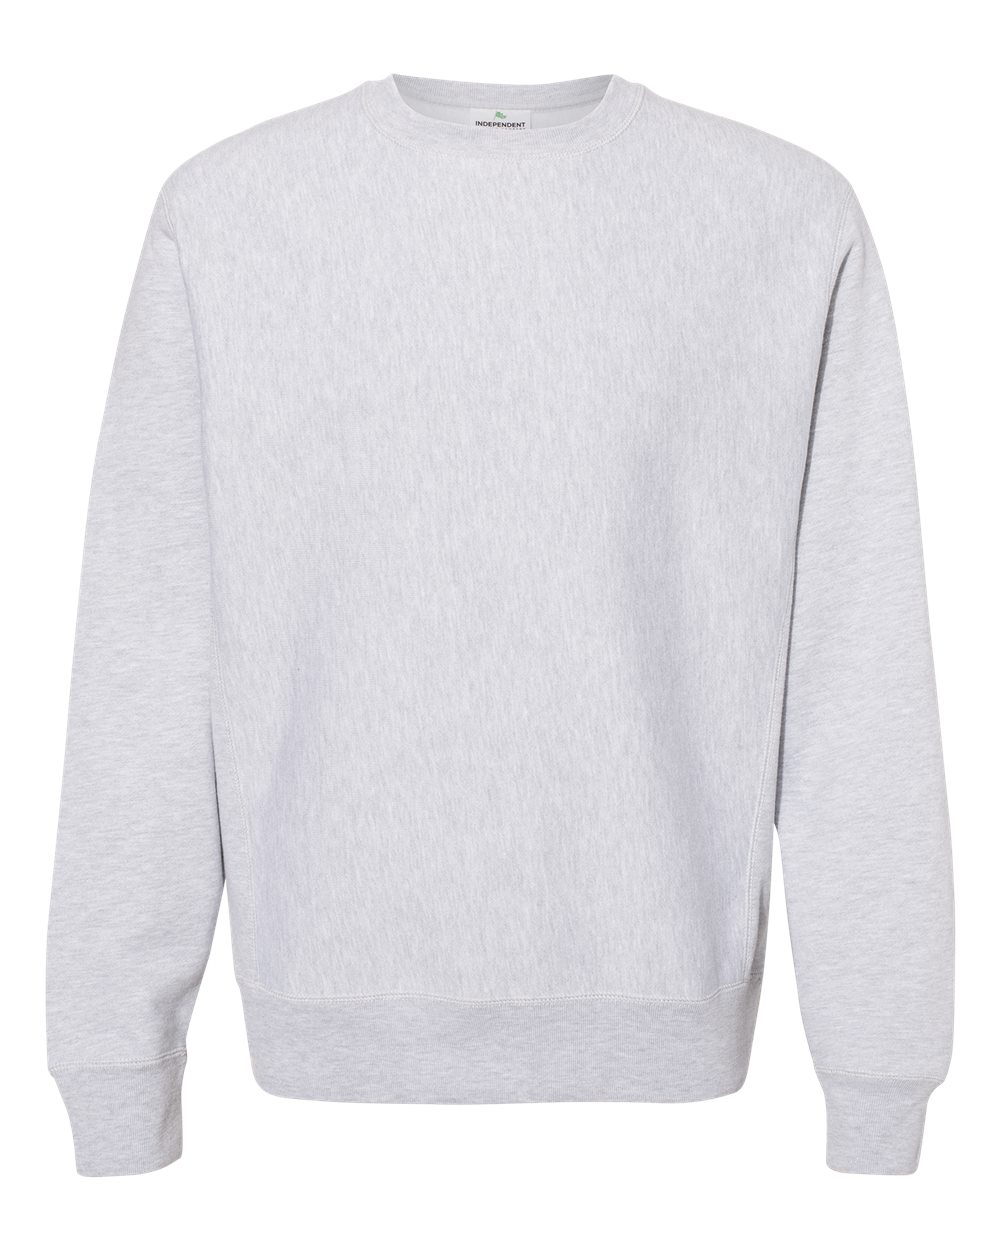 Independent-Trading-Co-Mens-Premium-Heavyweight-Cross-Grain-Sweatshirt-IND5000C thumbnail 21